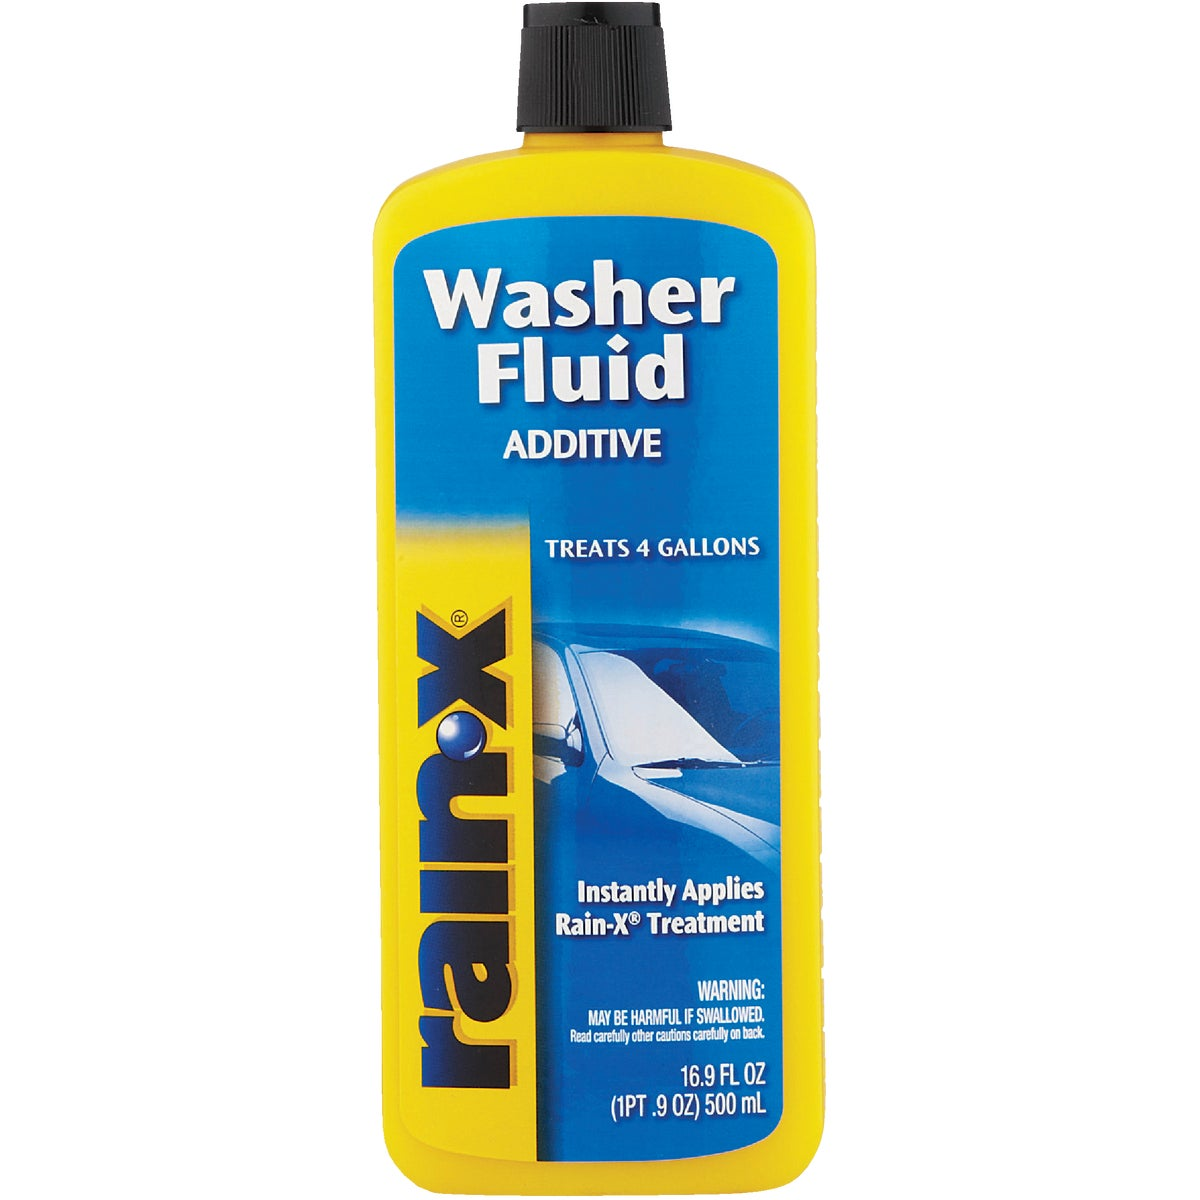 RAIN-X WASH ADDITIVE